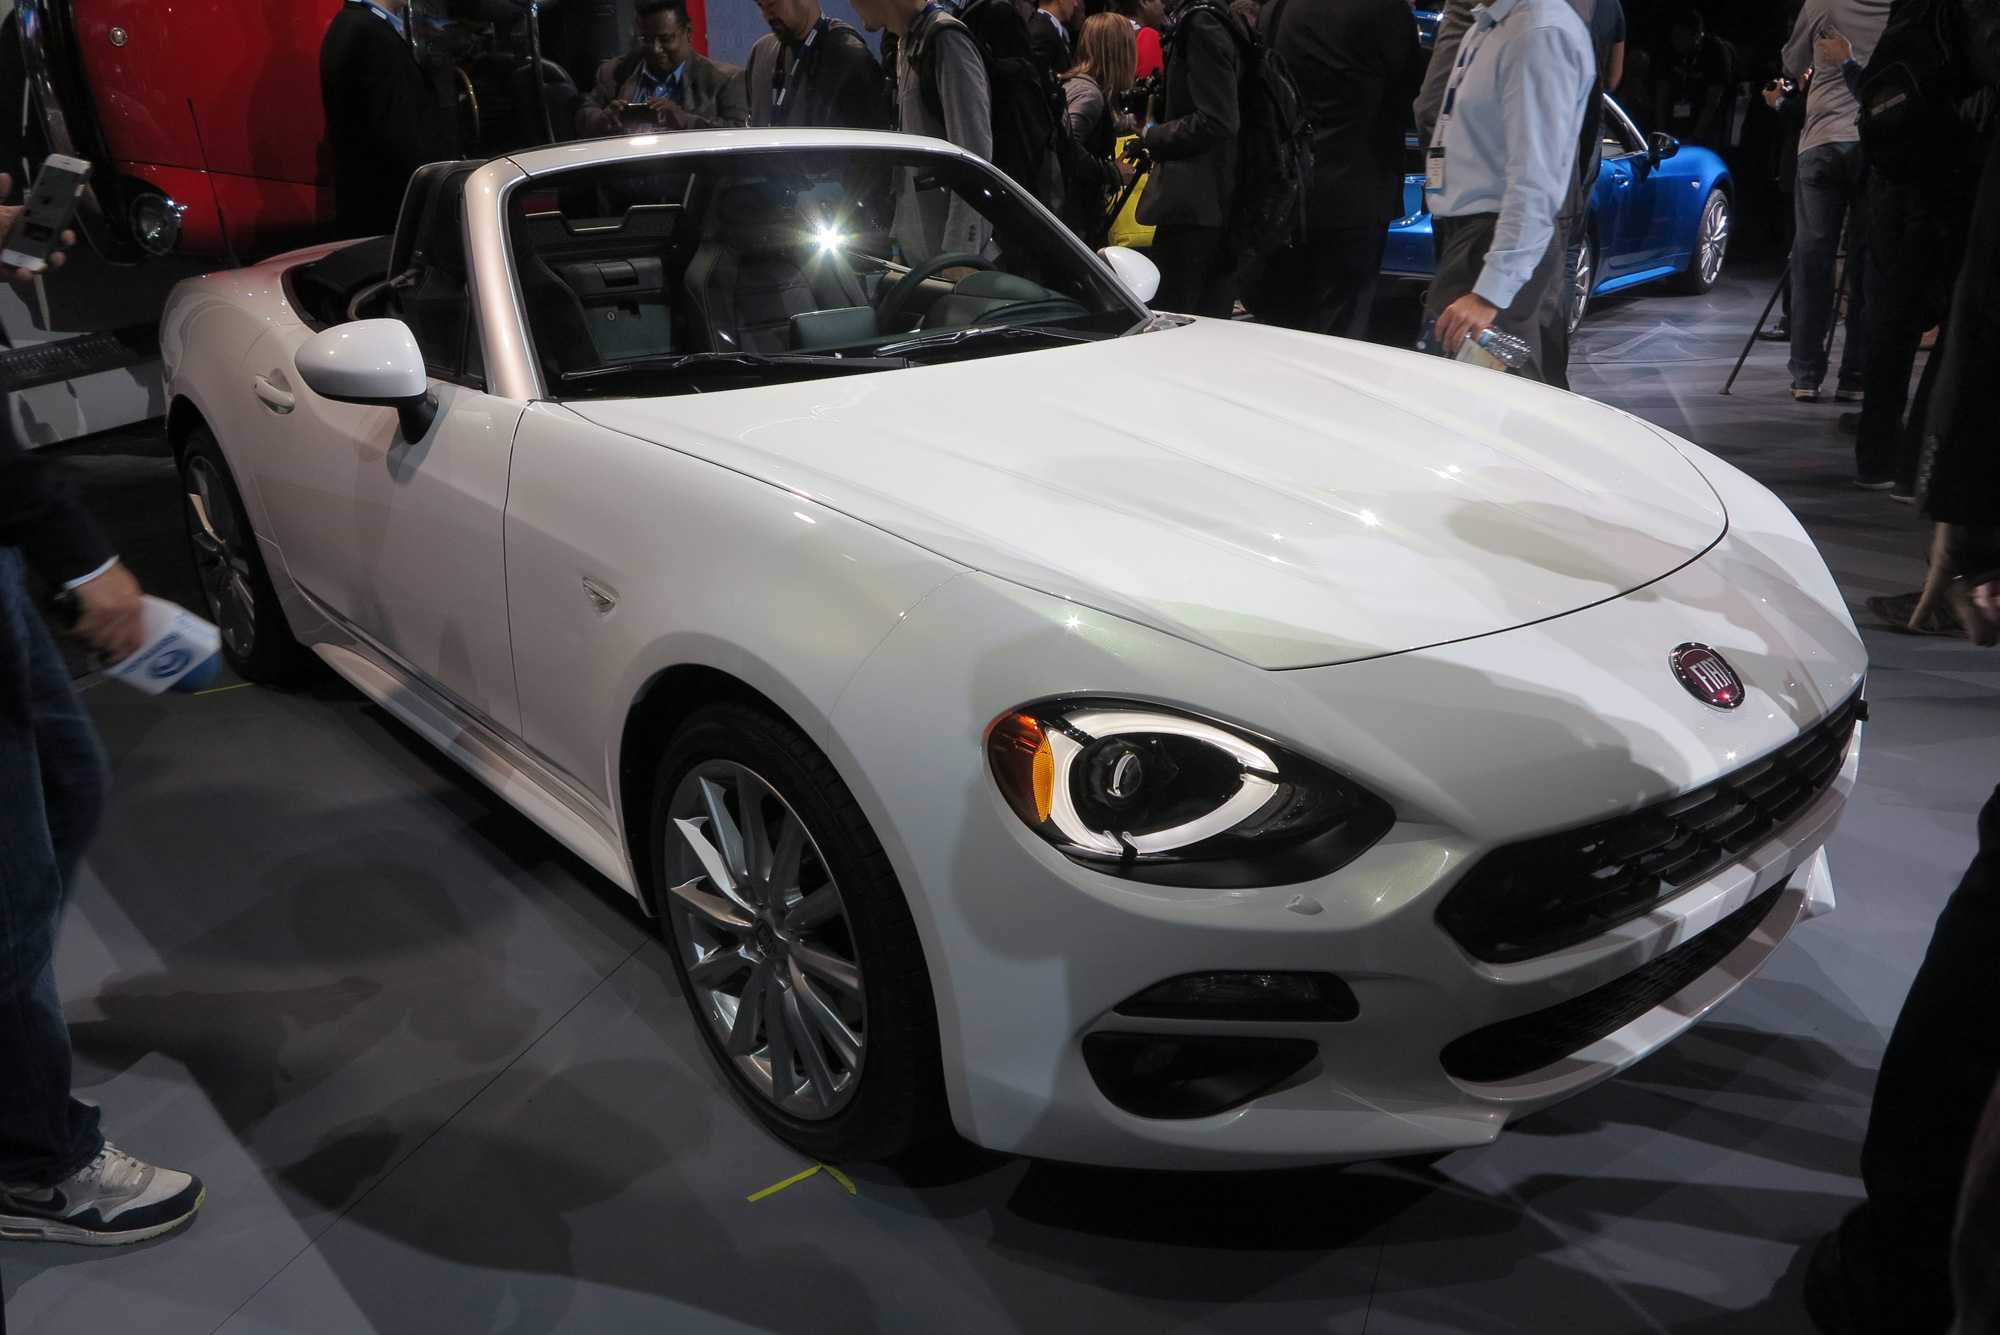 Super Fiat 124 Spider Headed for Rally Racing in 2017 UI38